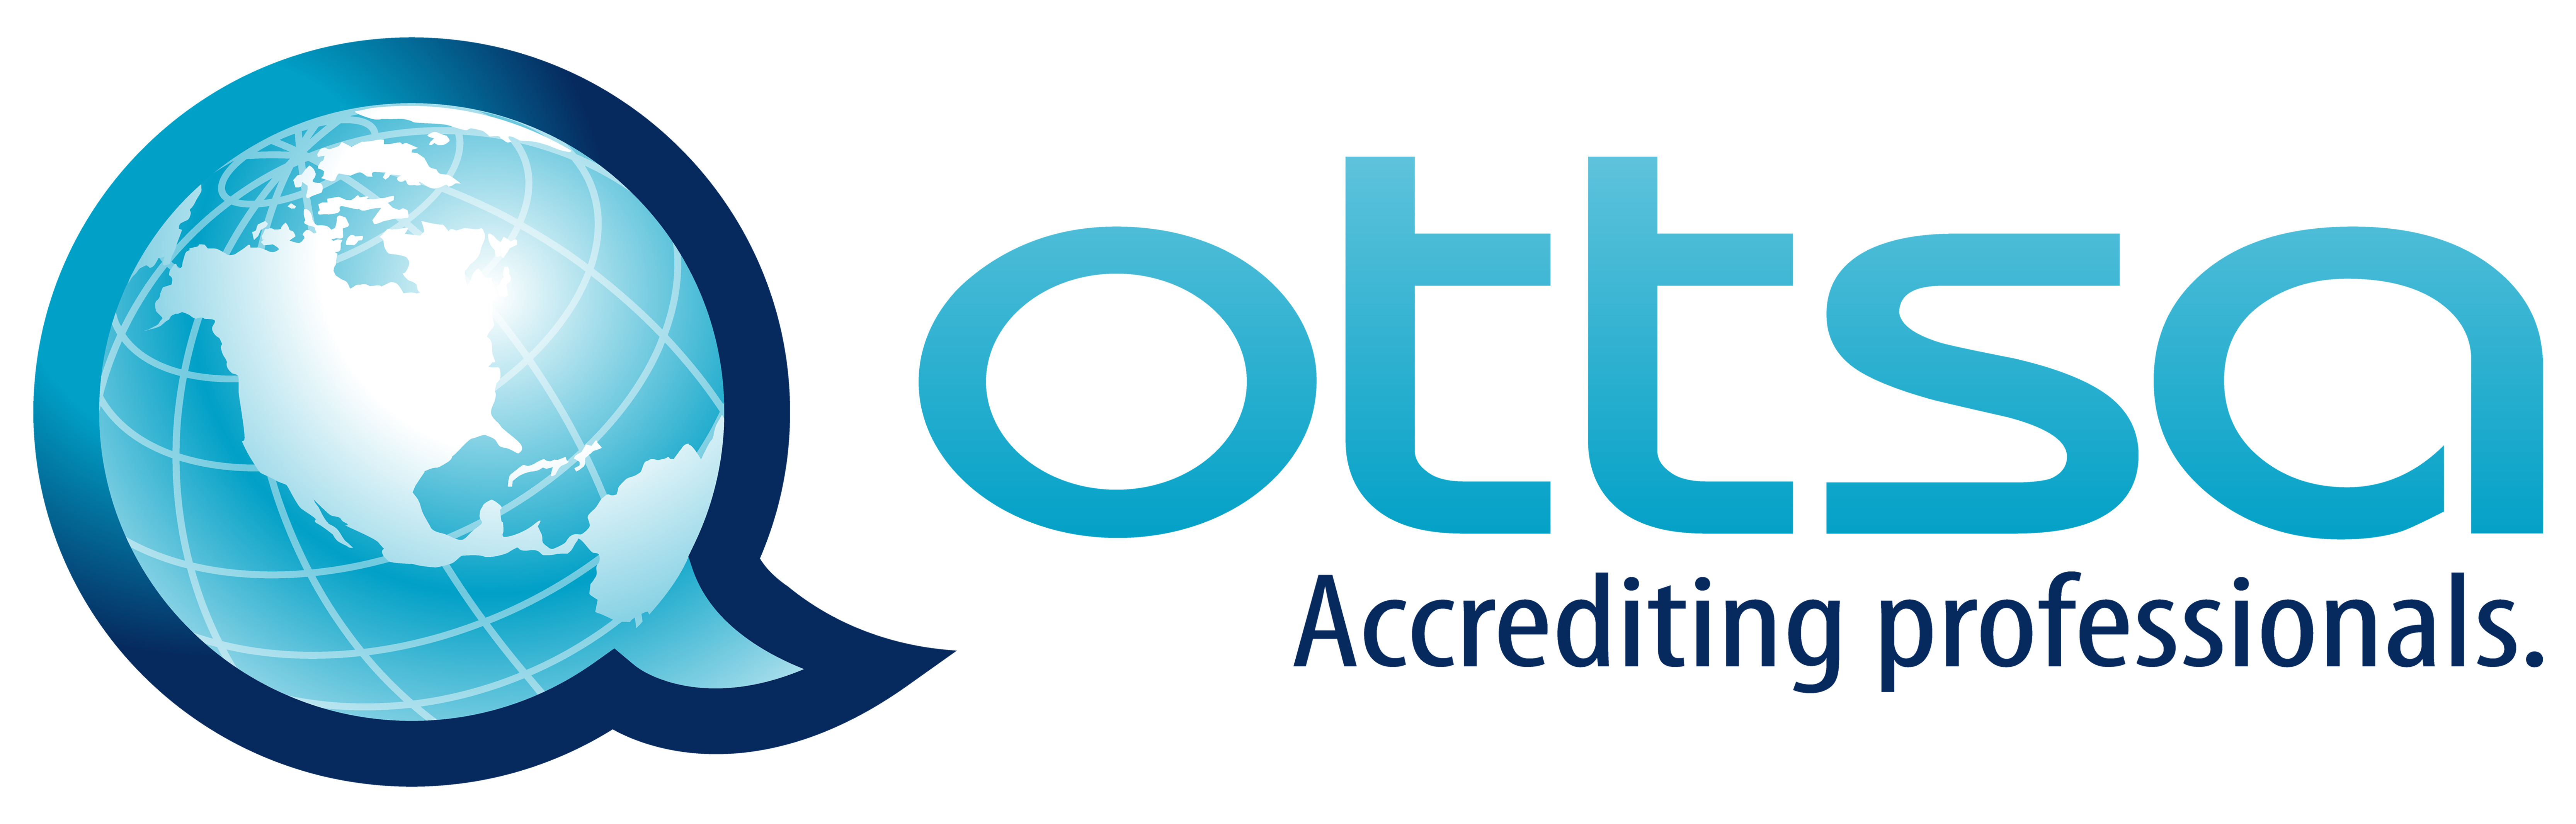 OTTSA - Accrediting Professionals